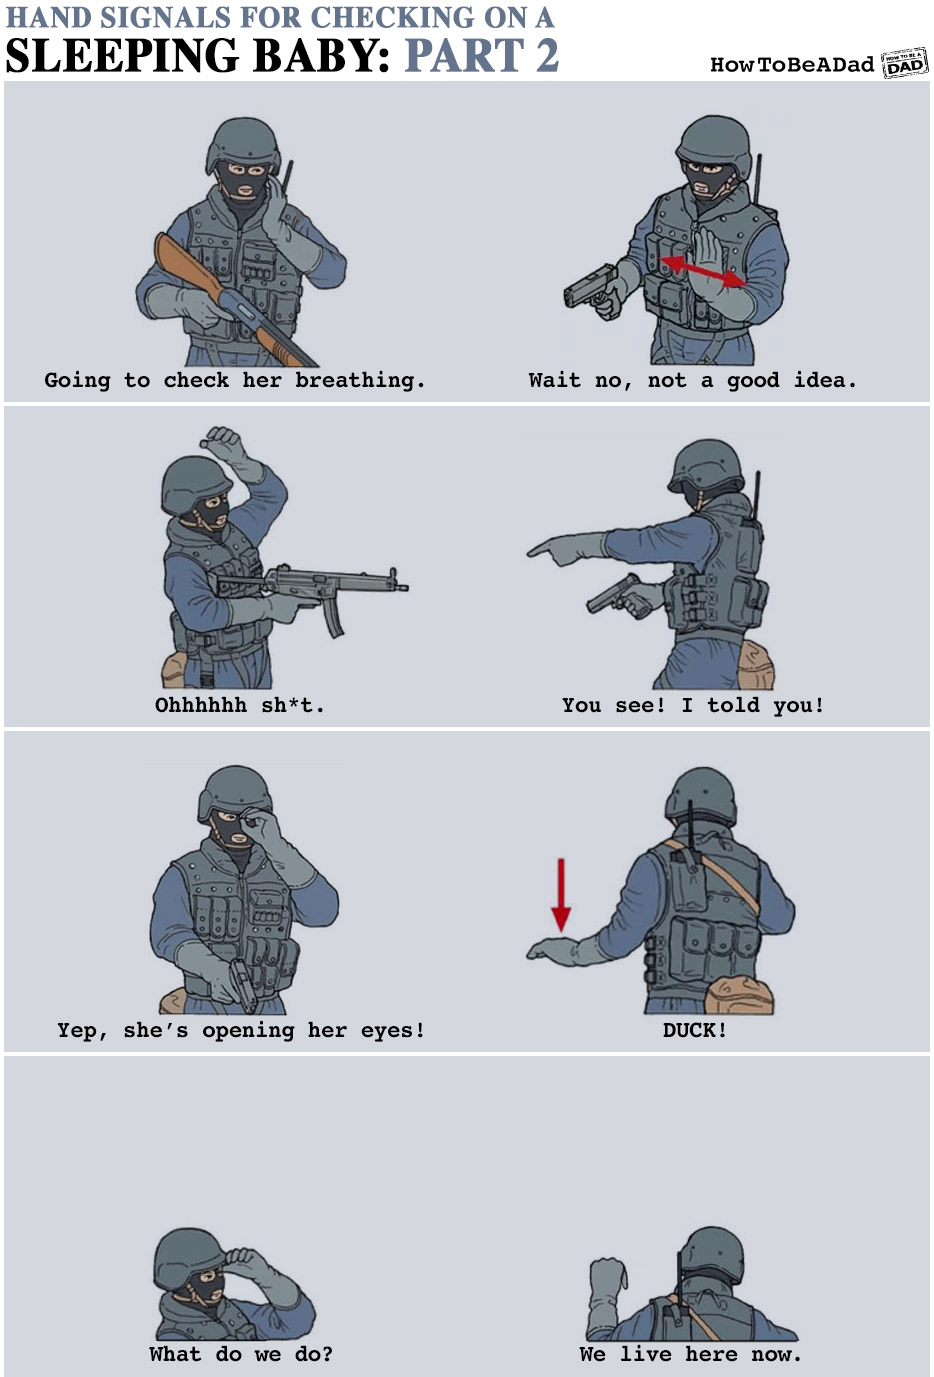 Military Hand Signals for Checking on a Sleeping Baby Funny Parenting Part 2